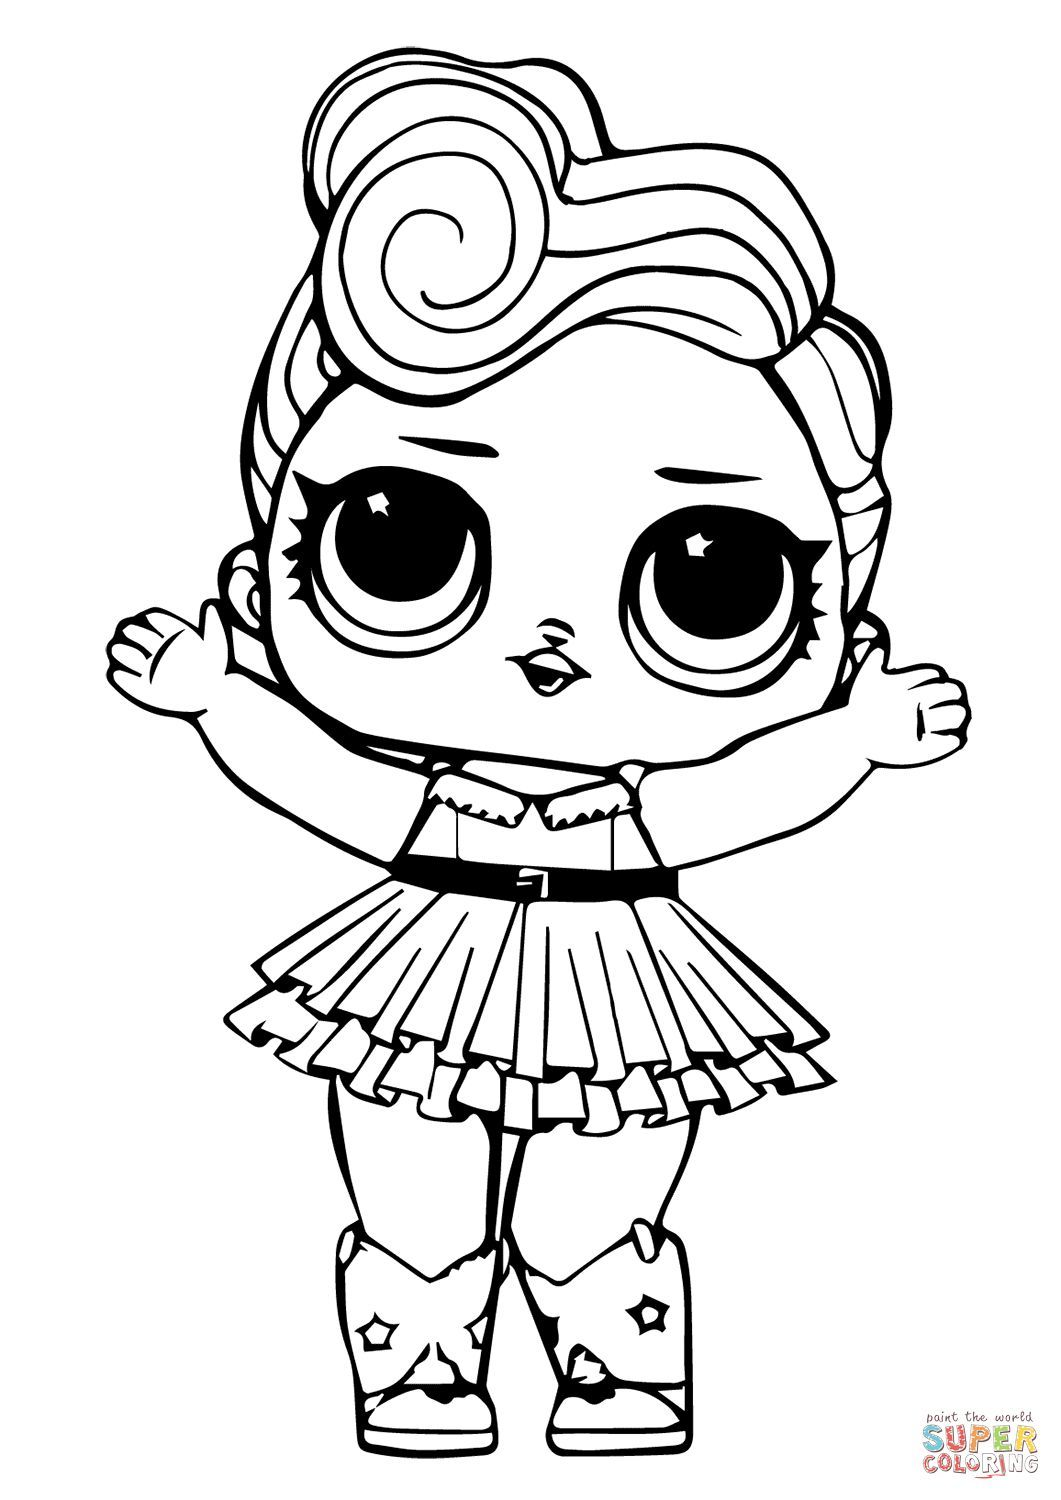 Lol Omg Doll Coloring Pages Unicorn Coloring Pages Animal Coloring Pages Princess Coloring Pages